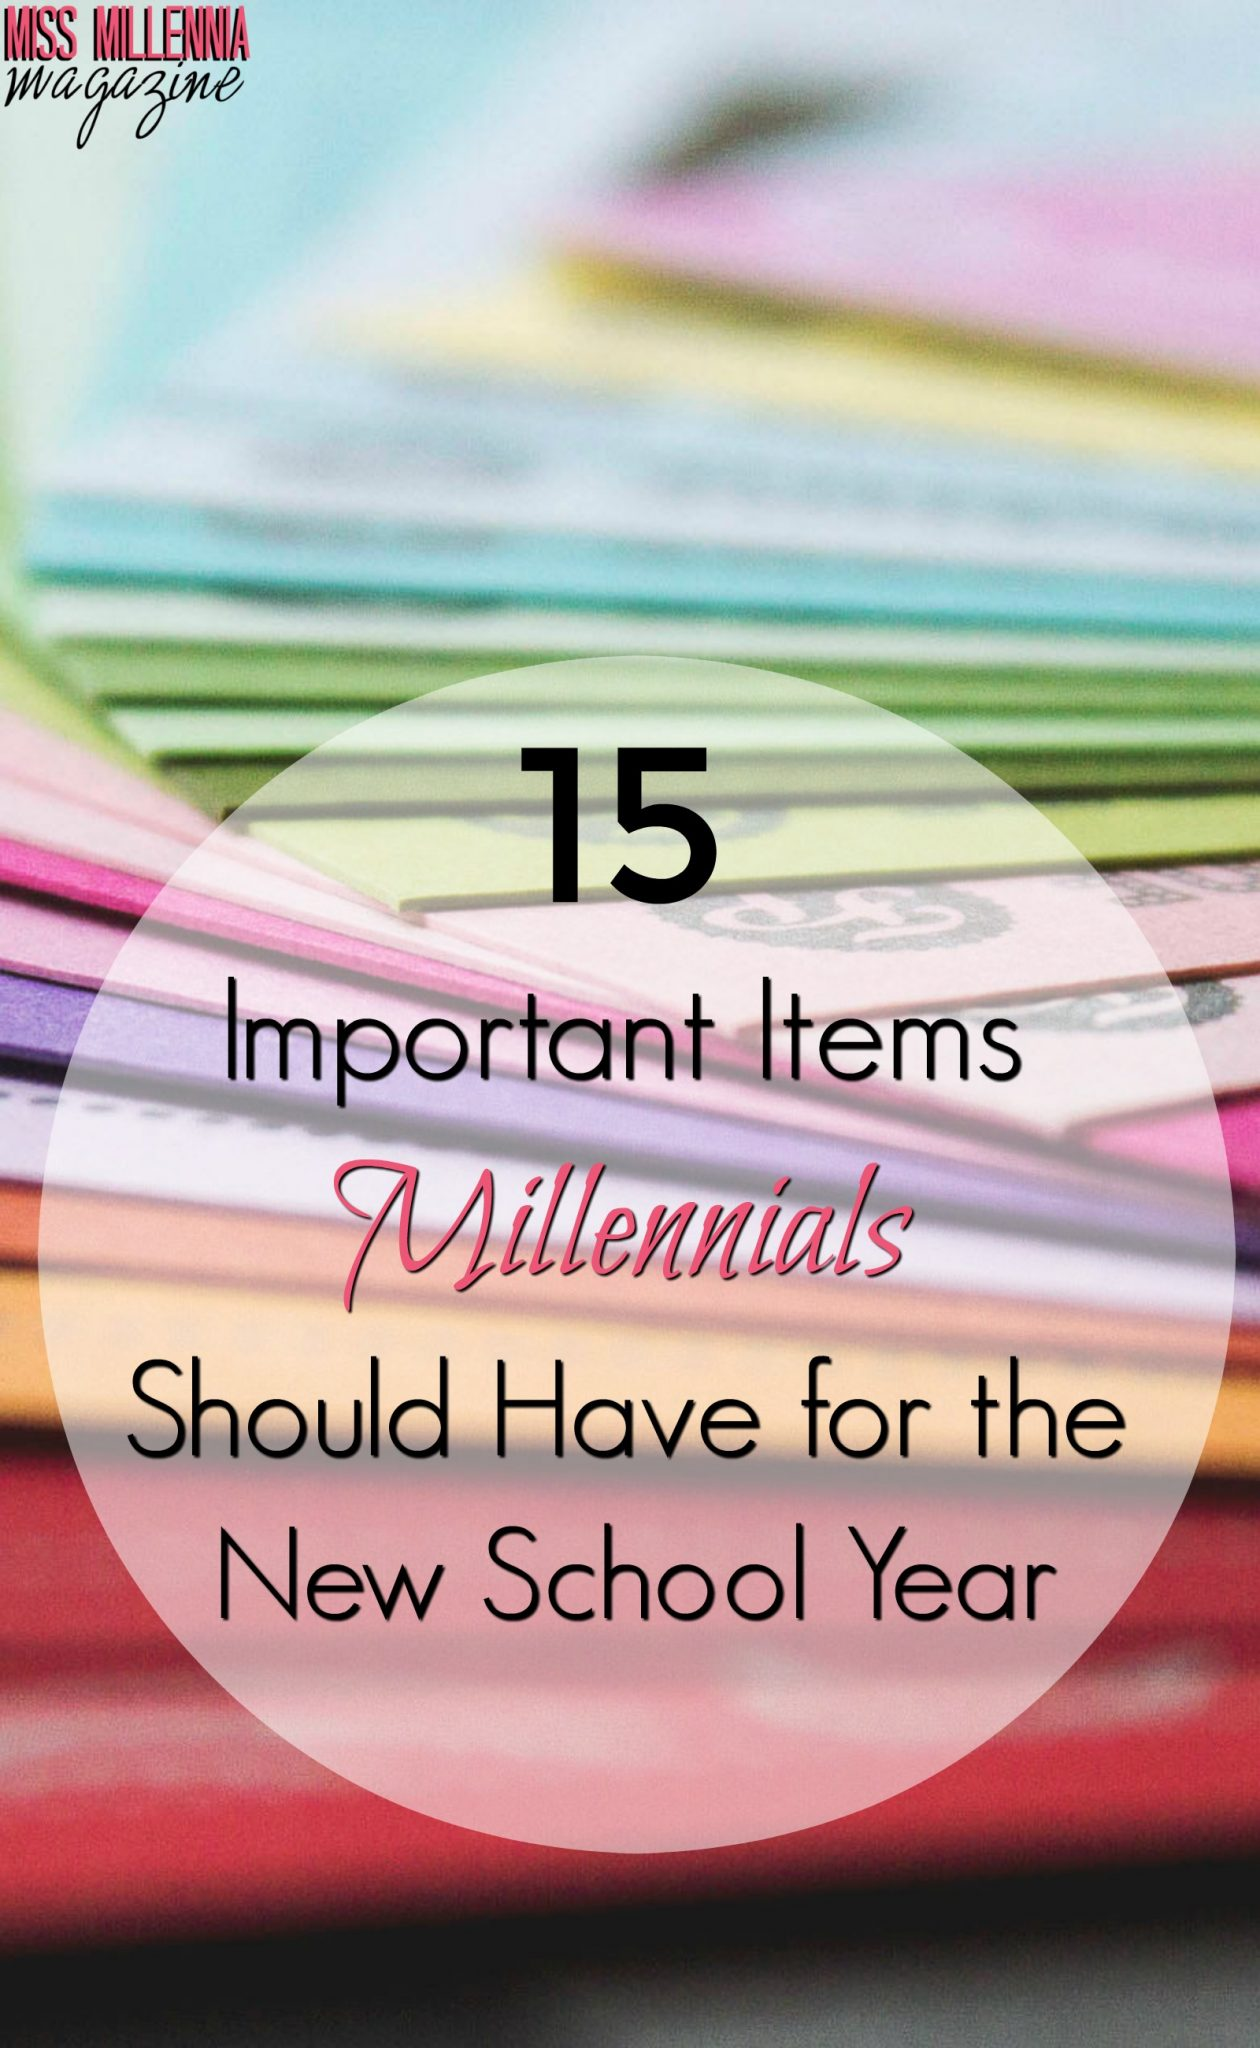 Check out these important items all millennials need for the school year!